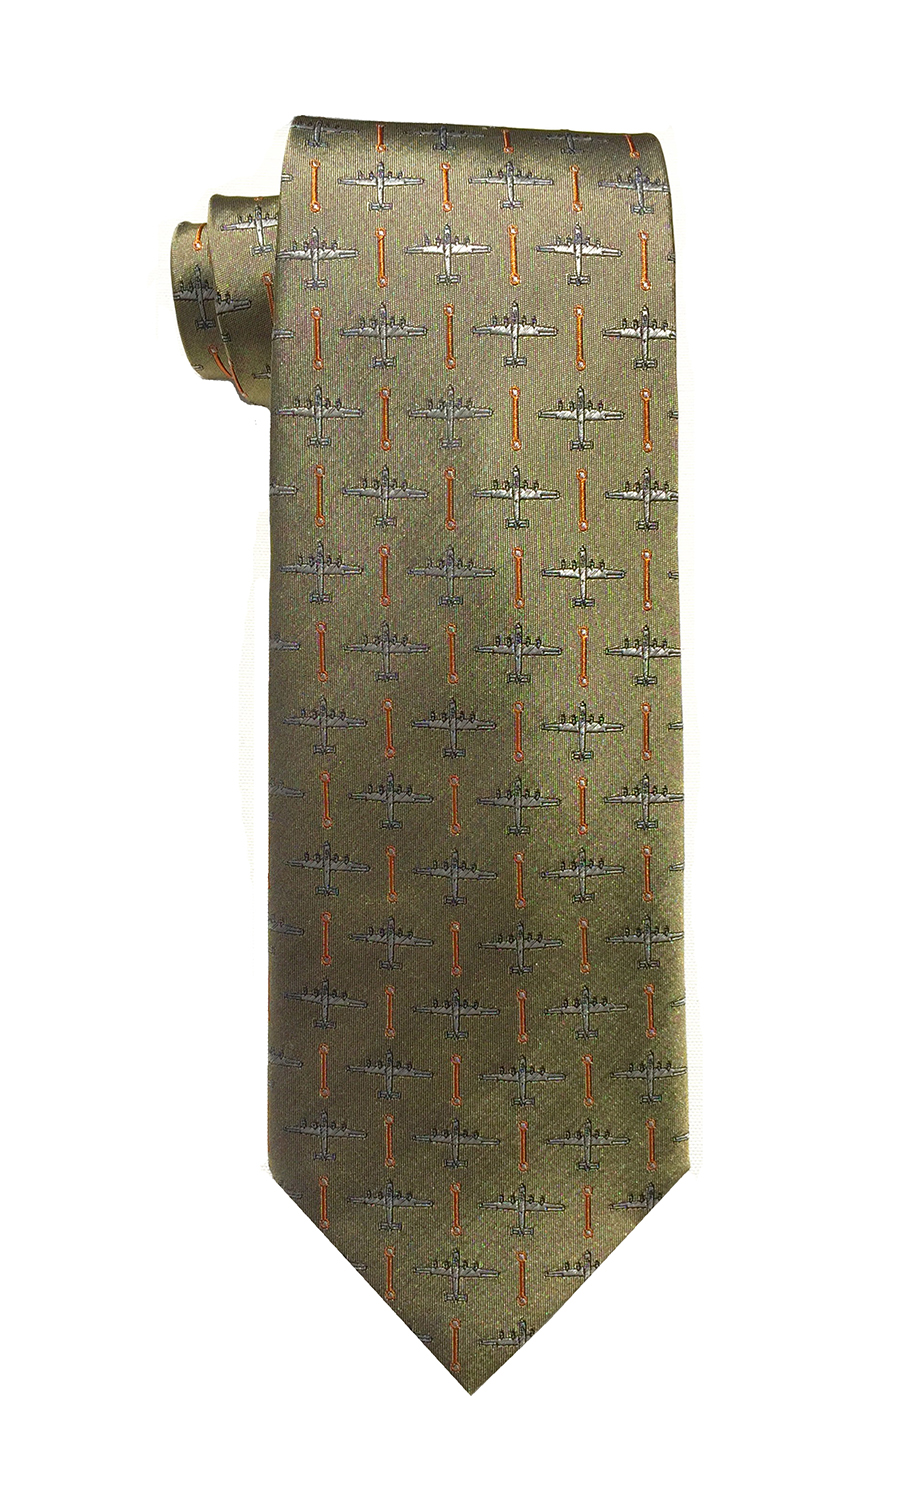 B-24 Liberator airplane tie in gold